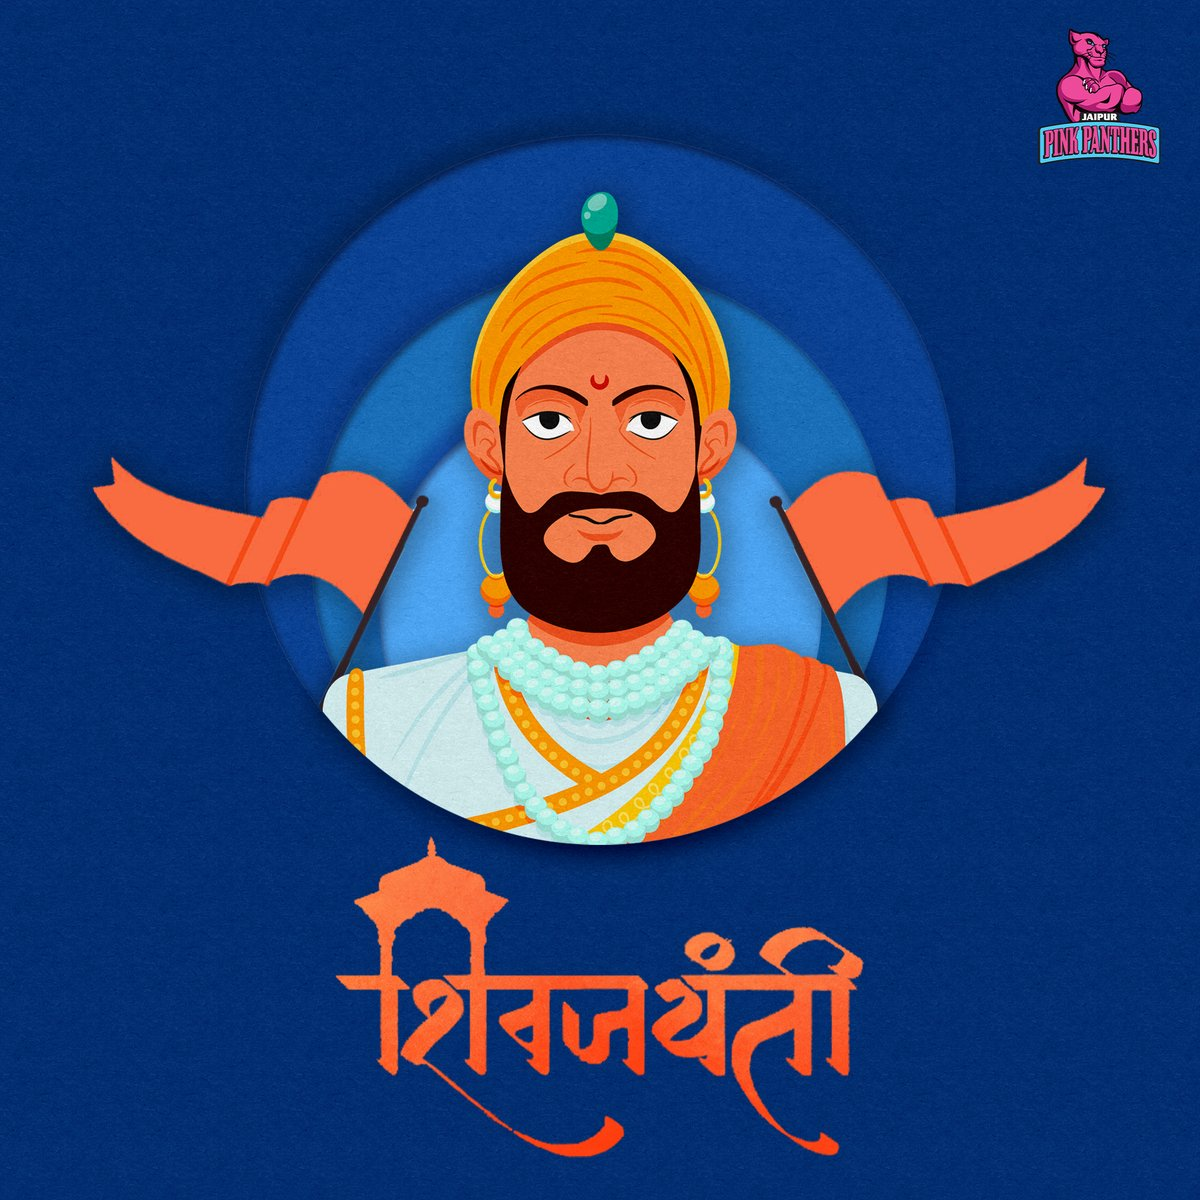 Chhatrapati Shivaji Maharaj Jayanti is day when we all come together and remember the legacy of the courageous leader. Wishing everyone out there a happy Shivaji Jayanti 🙌🏻  #PantherSquad #JaiHanuman #TopCats #JaipurPinkPanthers #JPP #Jaipur #vivoprokabaddi